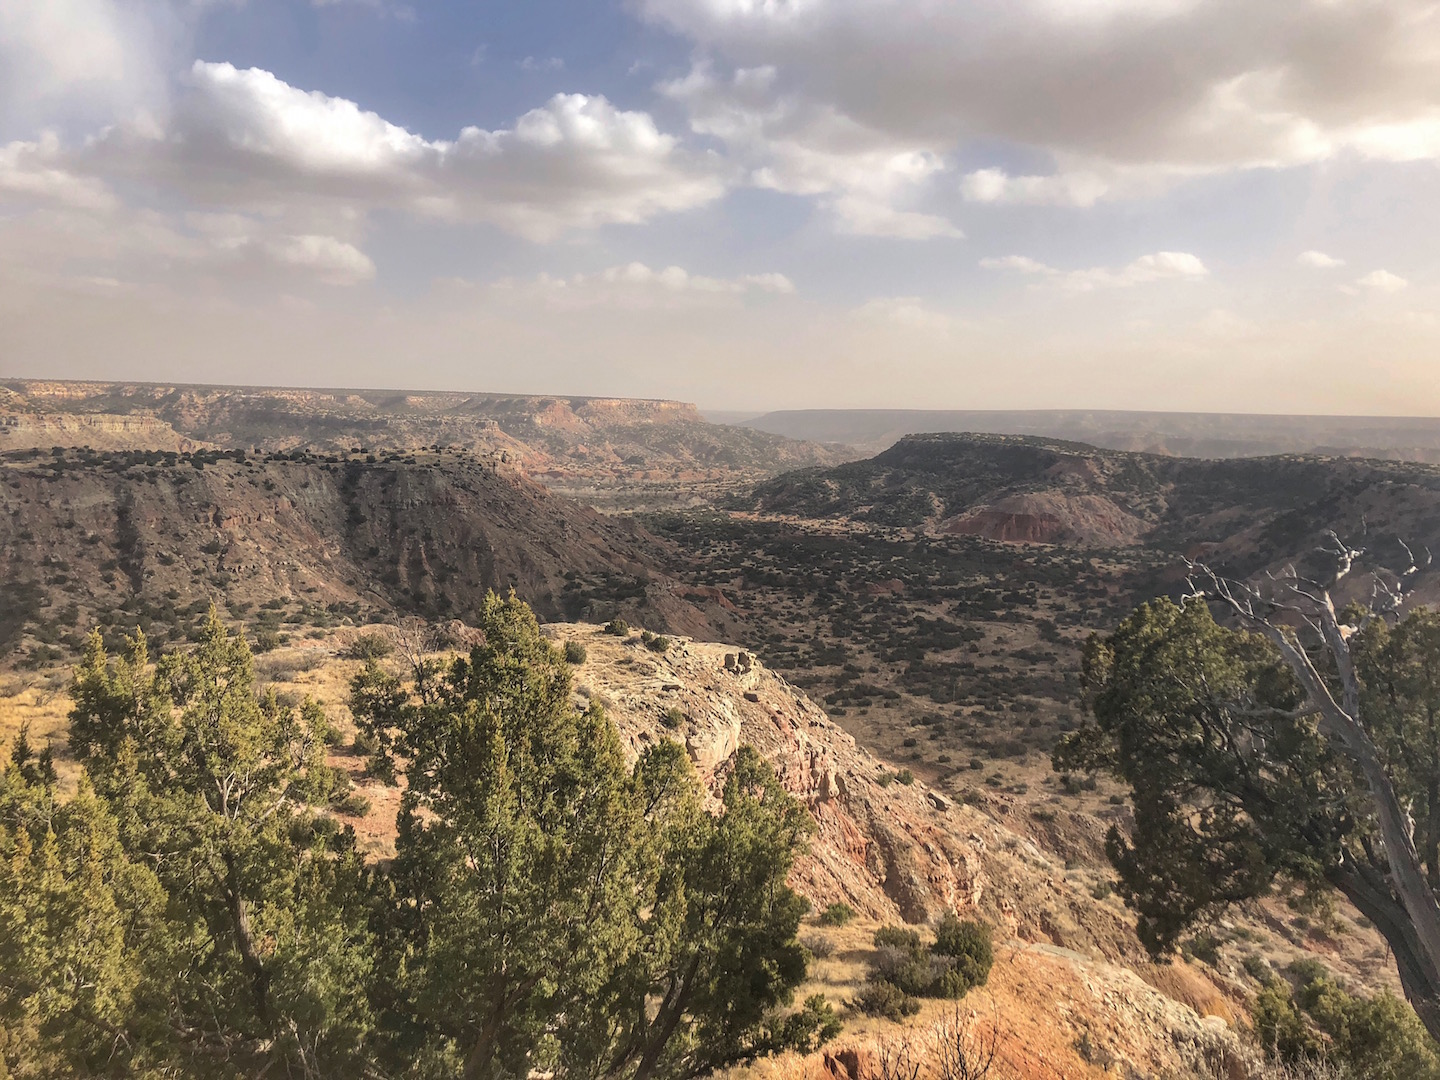 Palo Duro Canyon in Texas is the second largest canyon in the United States